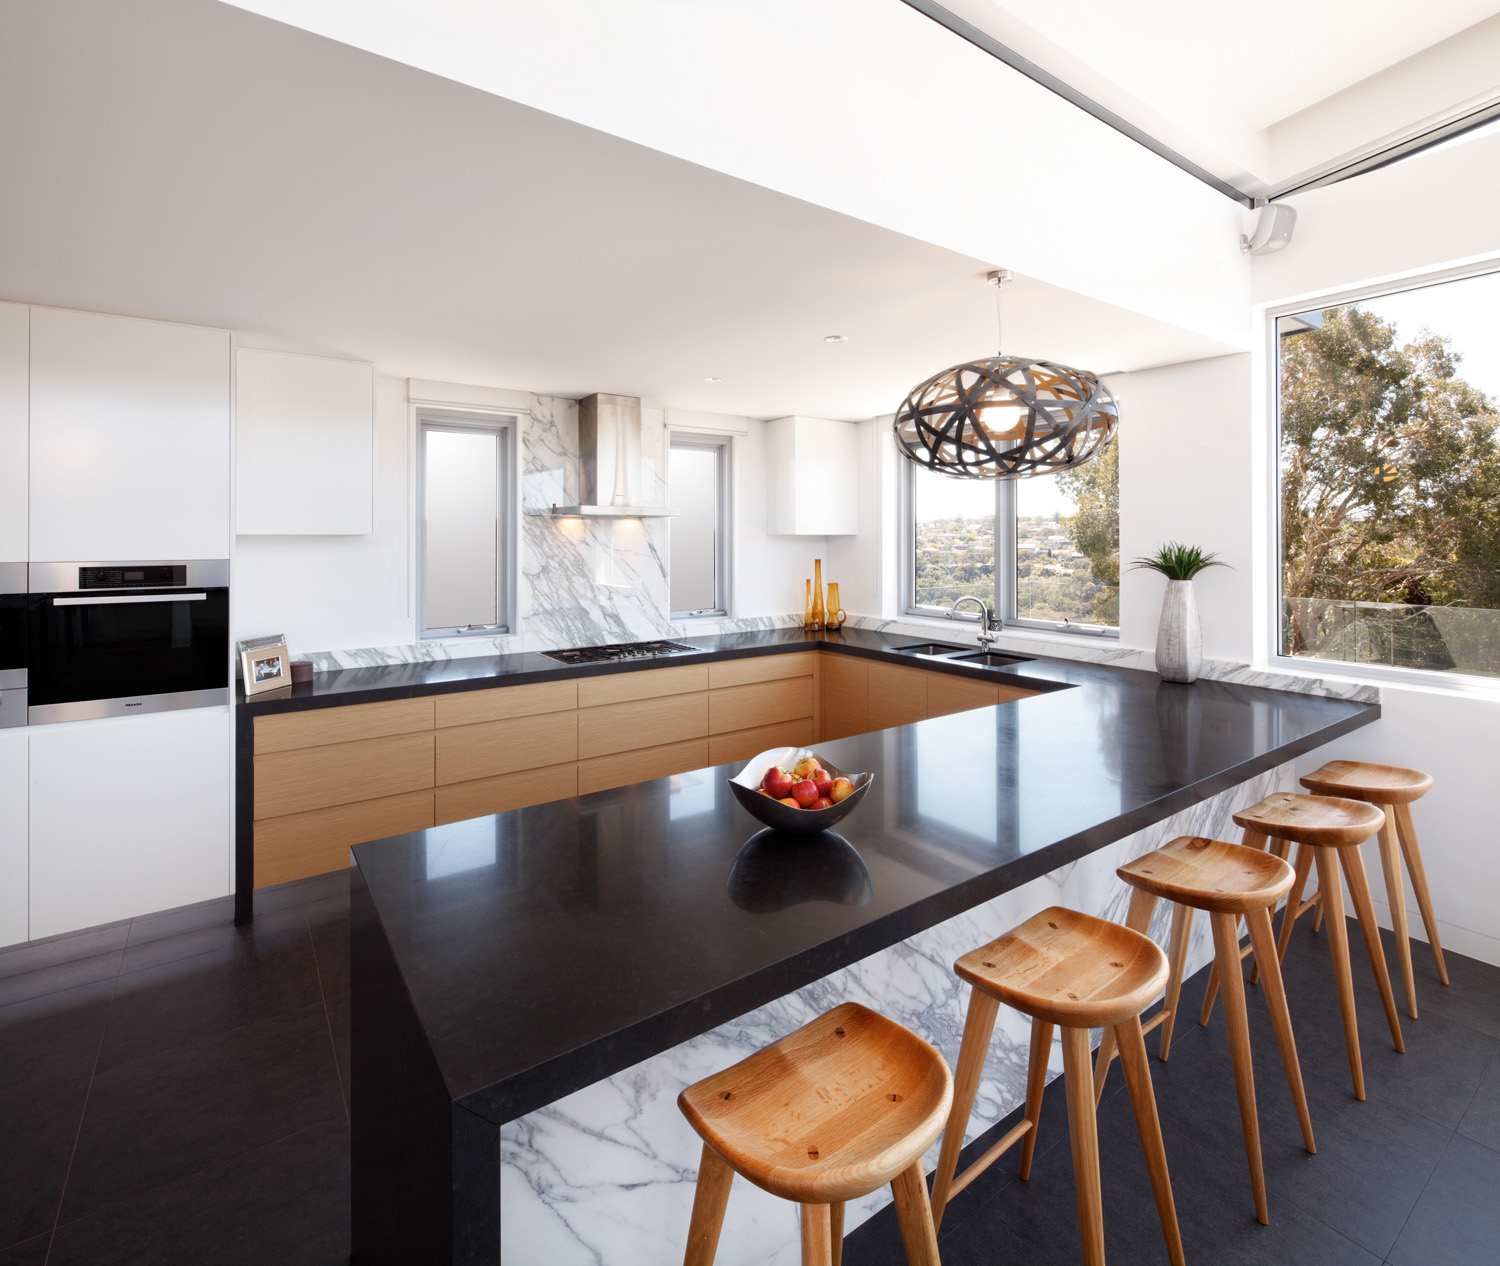 Kitchen triumph: combining textures and materials